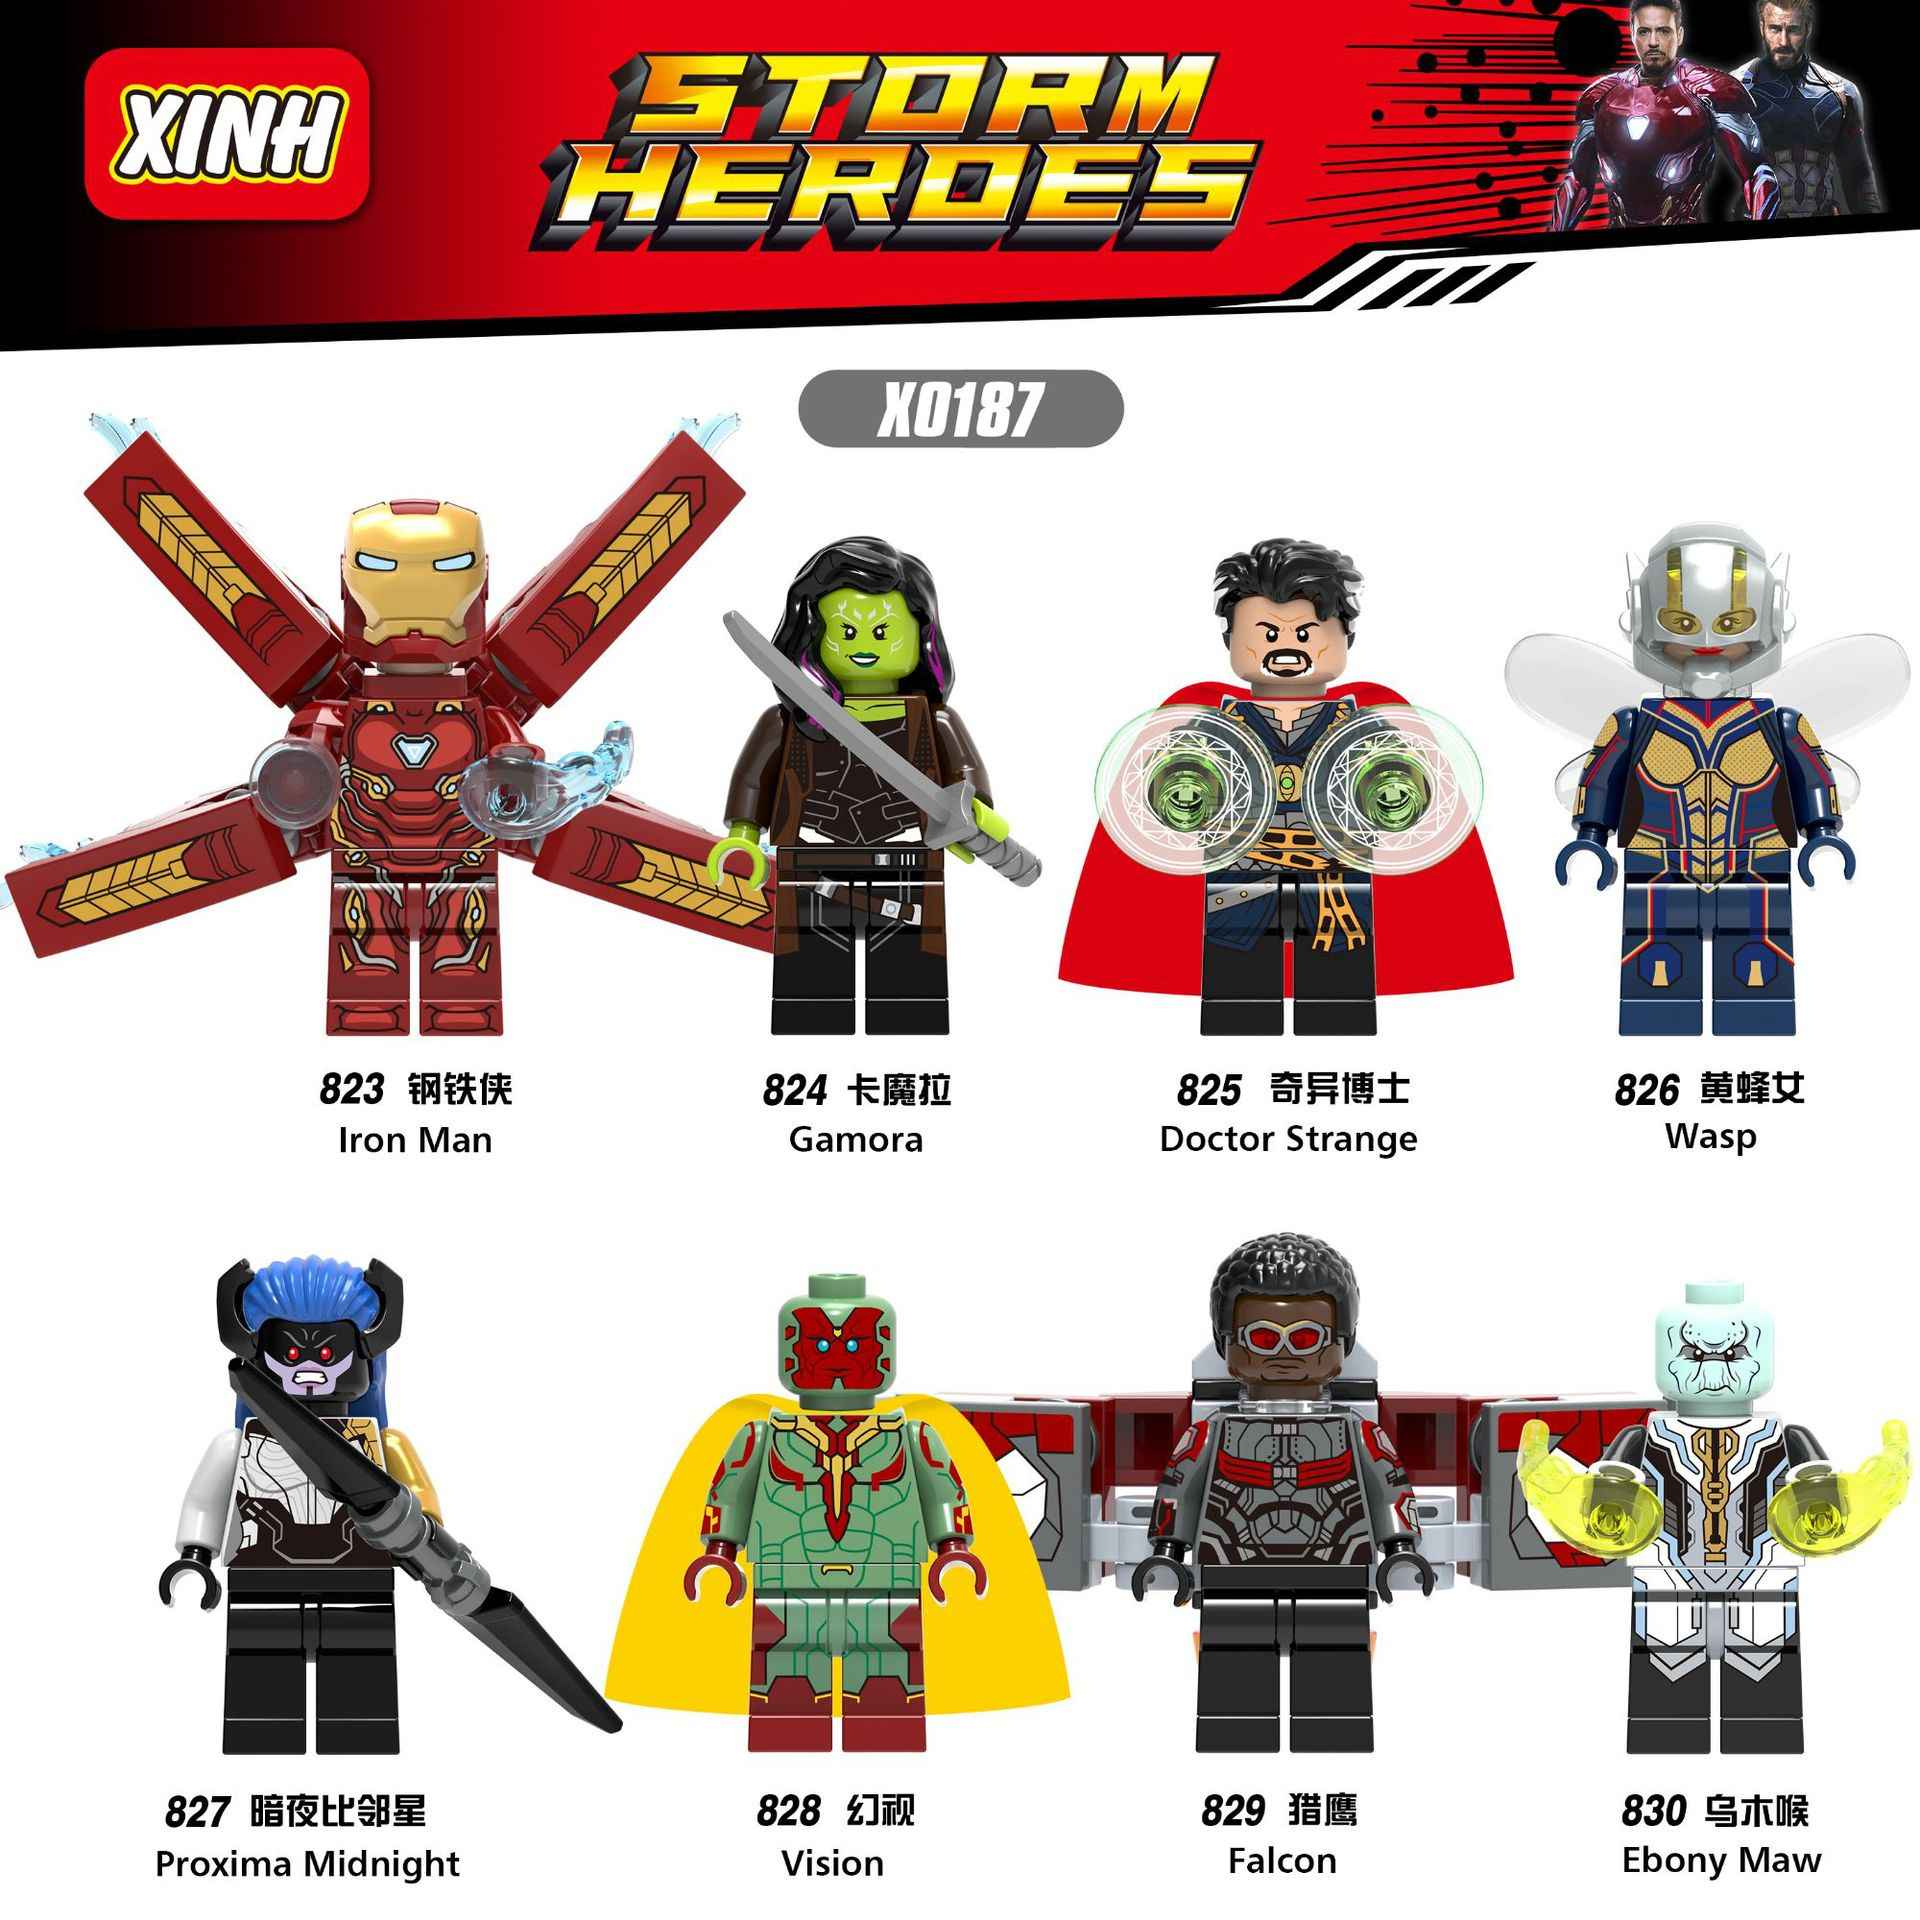 lEGOED Marvel Avengers Infinity War Thanos  Iron ManThor Black Panther Falcon Gamora Hulk Building Blocks toySuper Heroes